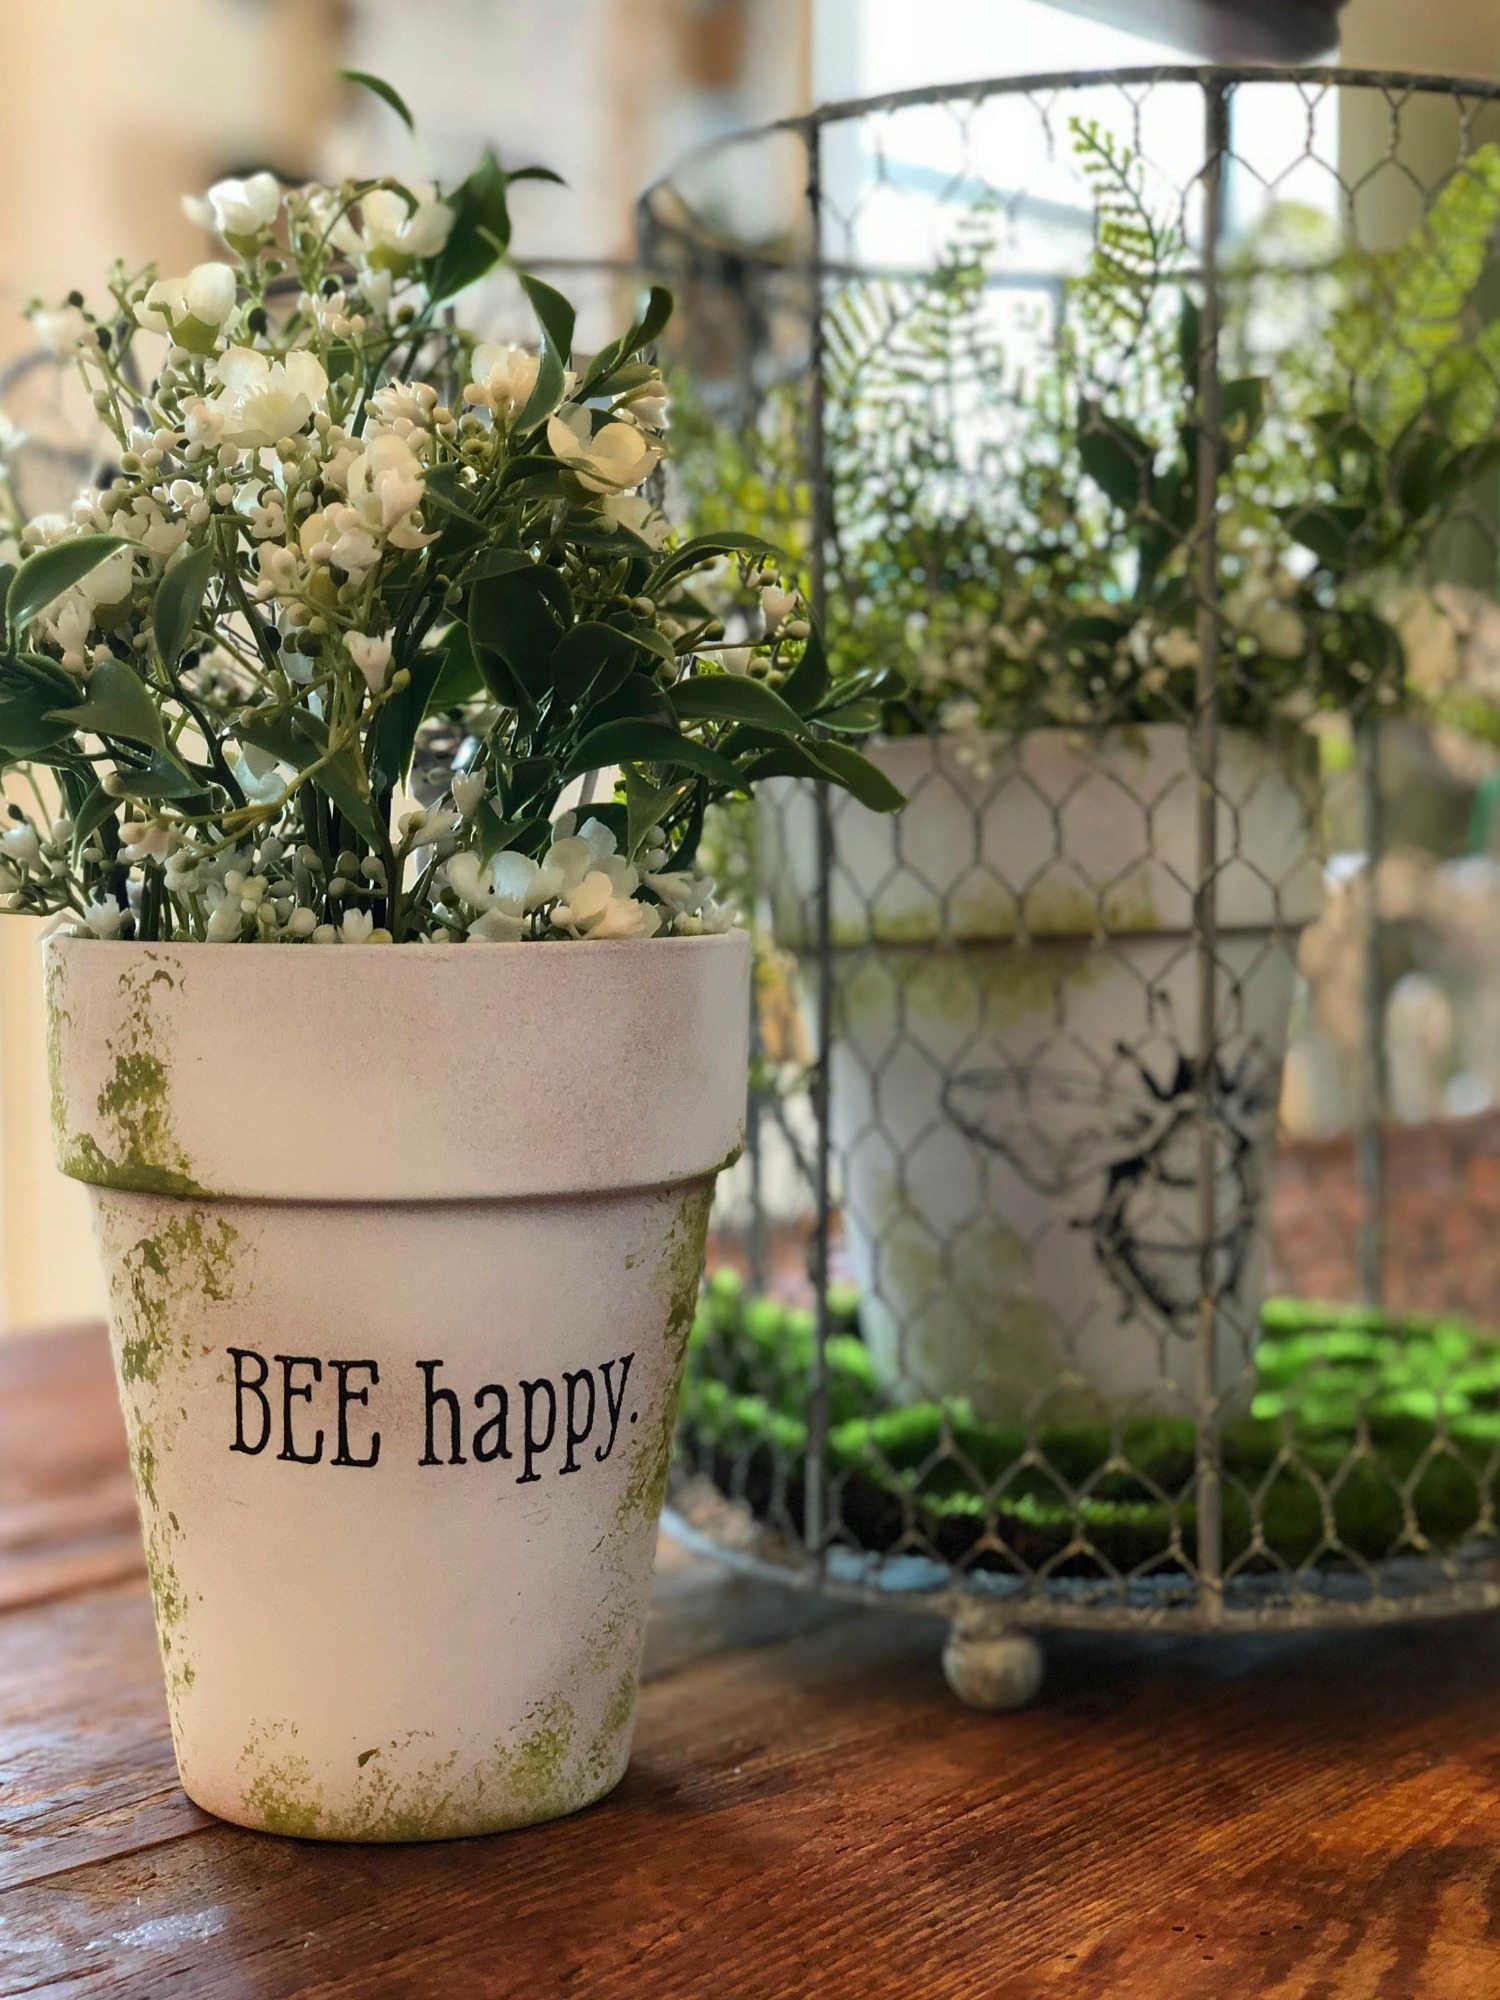 Bee inspired clay pots